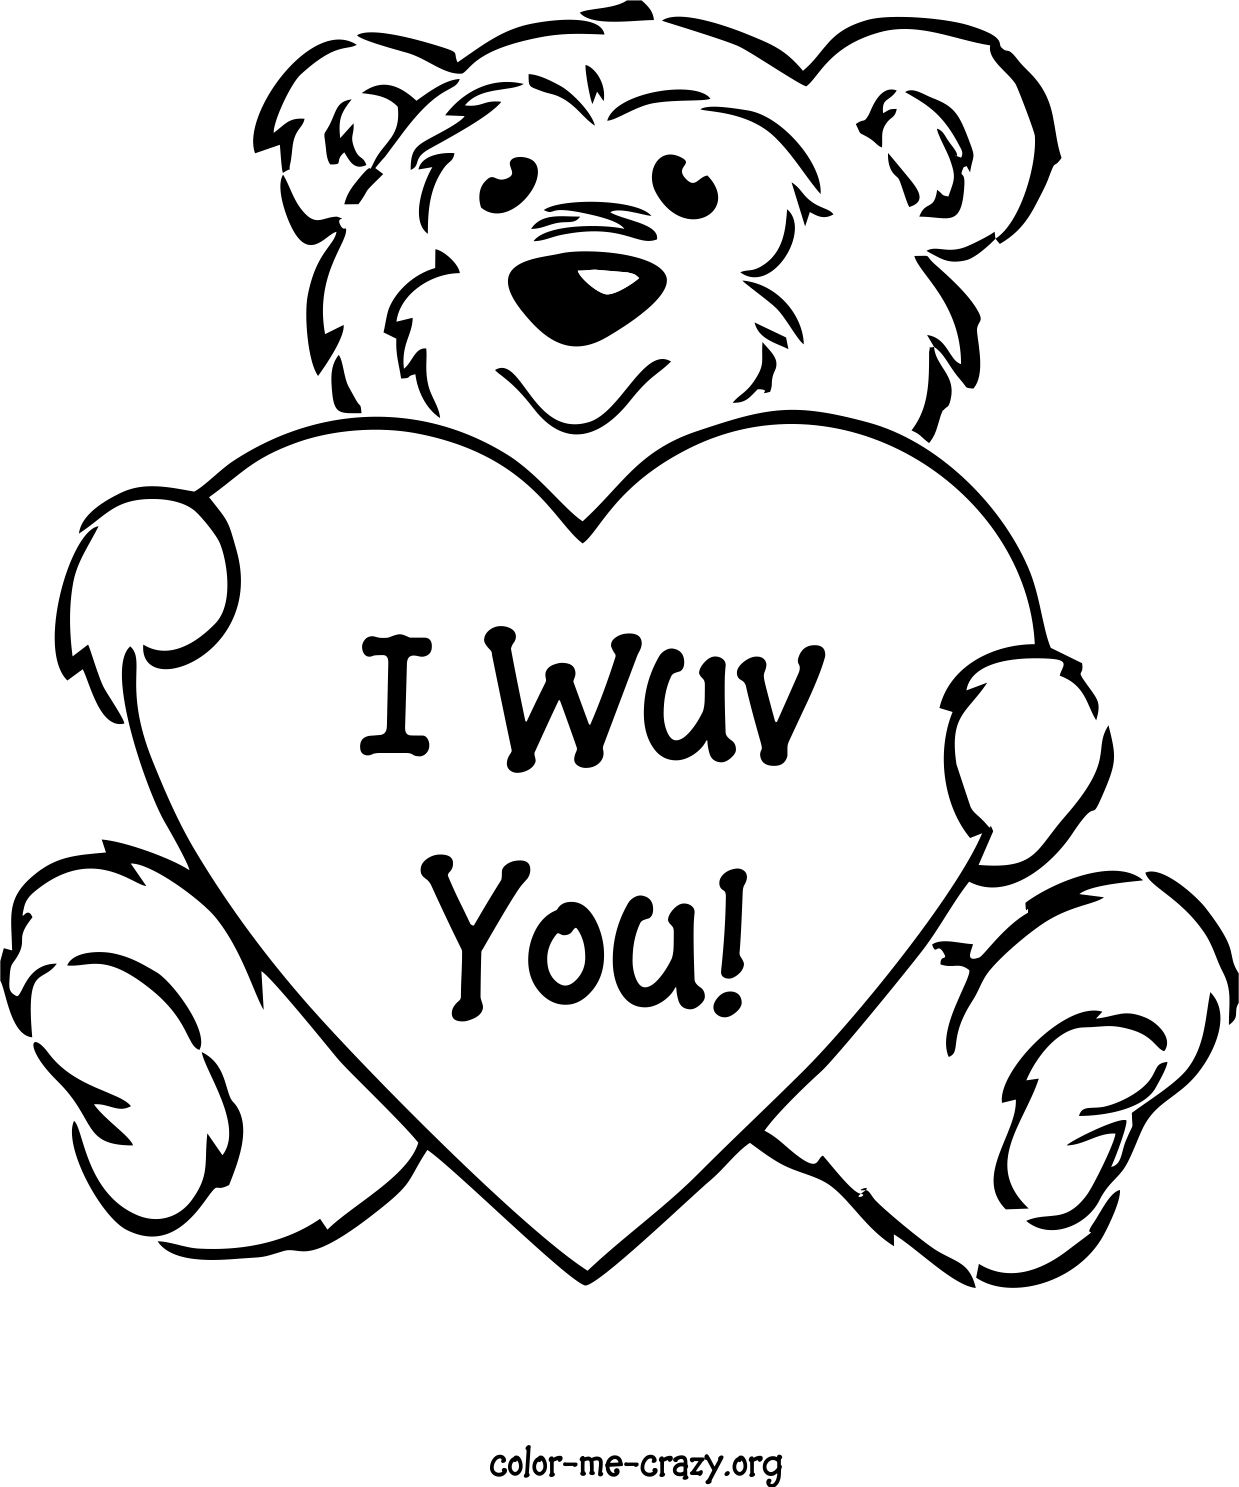 Valentine Hearts Coloring Pages For Girls Various Kids Coloring Pages And Some Adult Ones